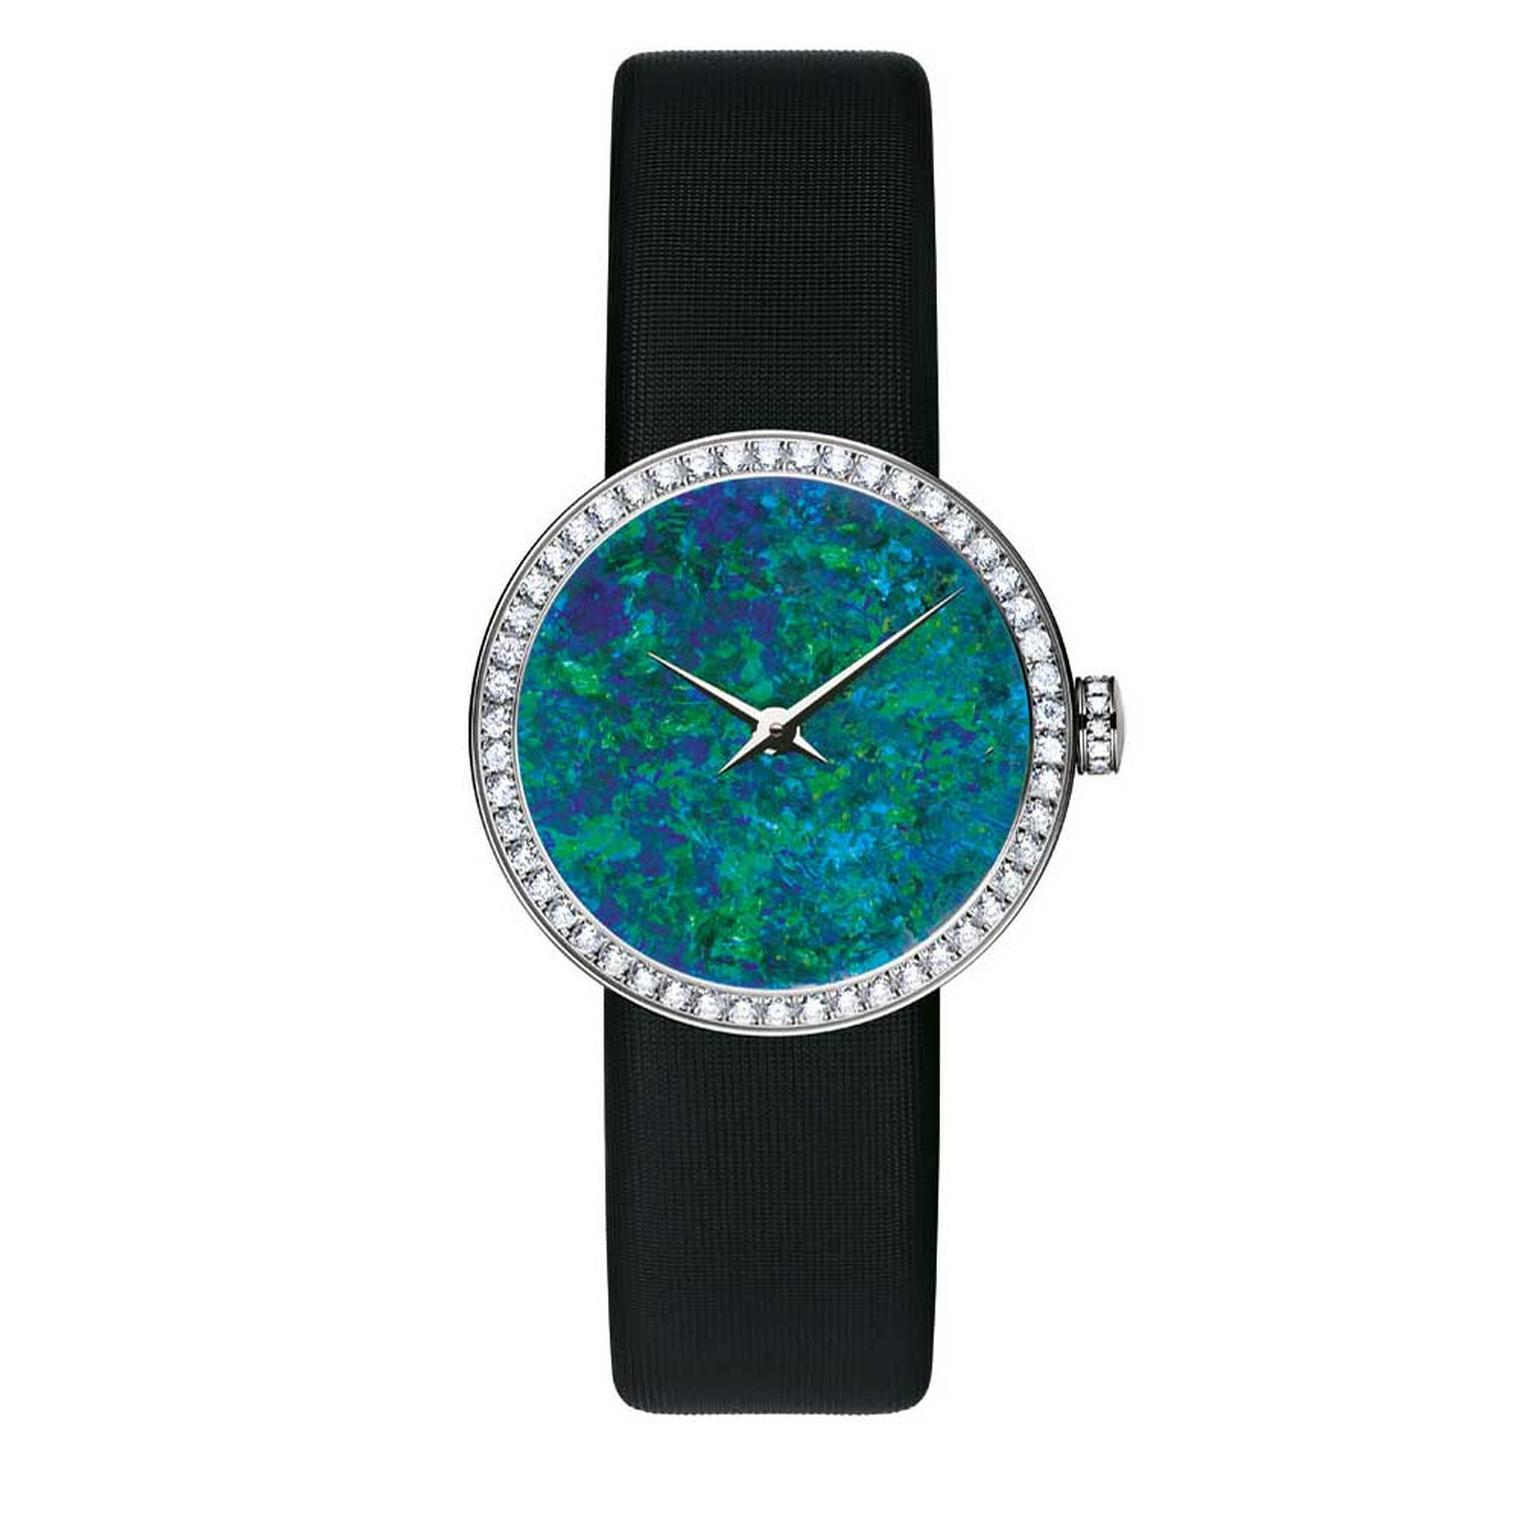 La-Mini-D-de-Dior-with-opal-dial-and-diamonds-in-white-gold